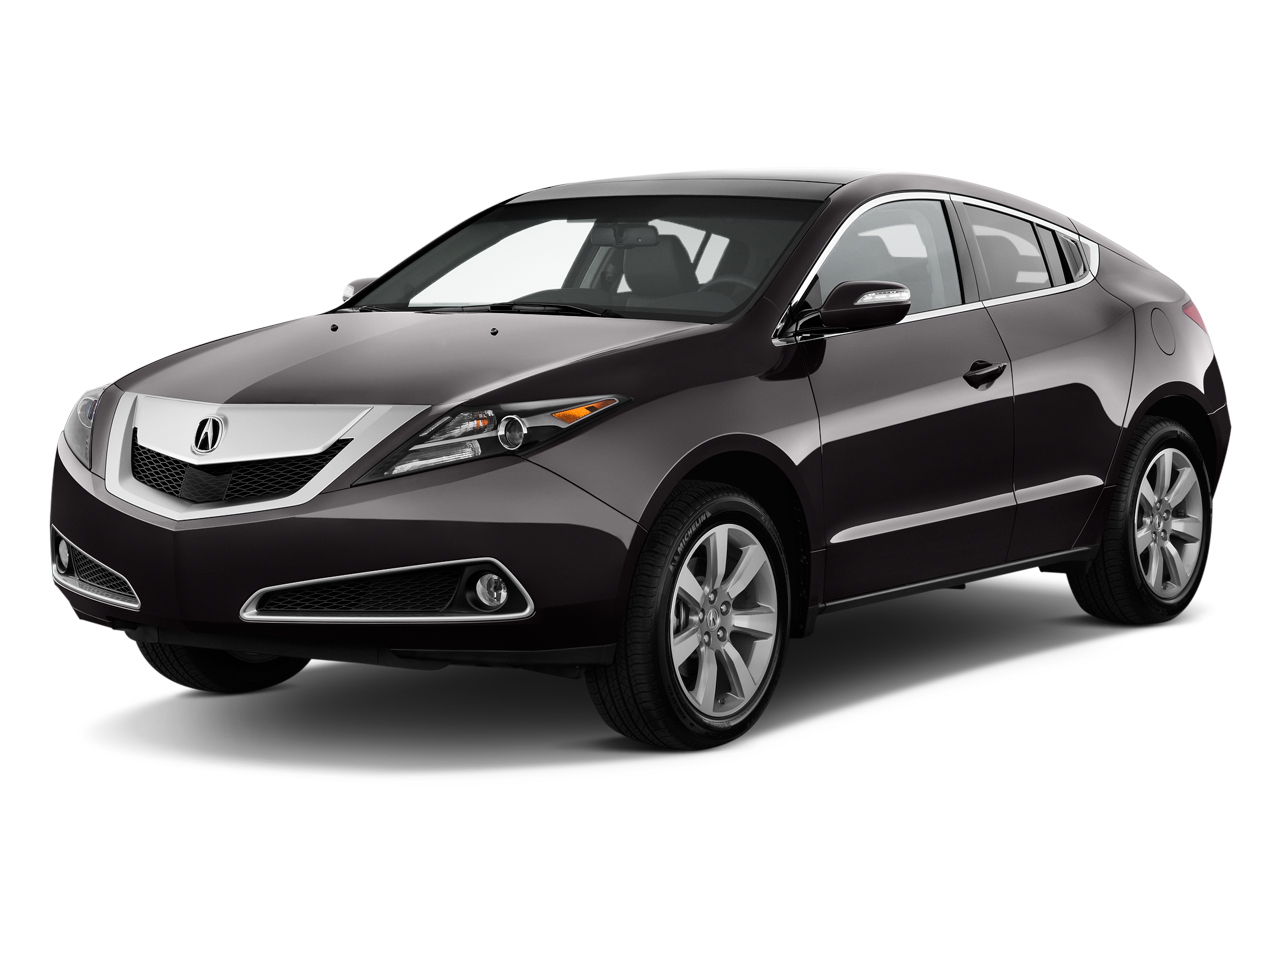 2011 acura zdx review ratings specs prices and photos the car connection. Black Bedroom Furniture Sets. Home Design Ideas